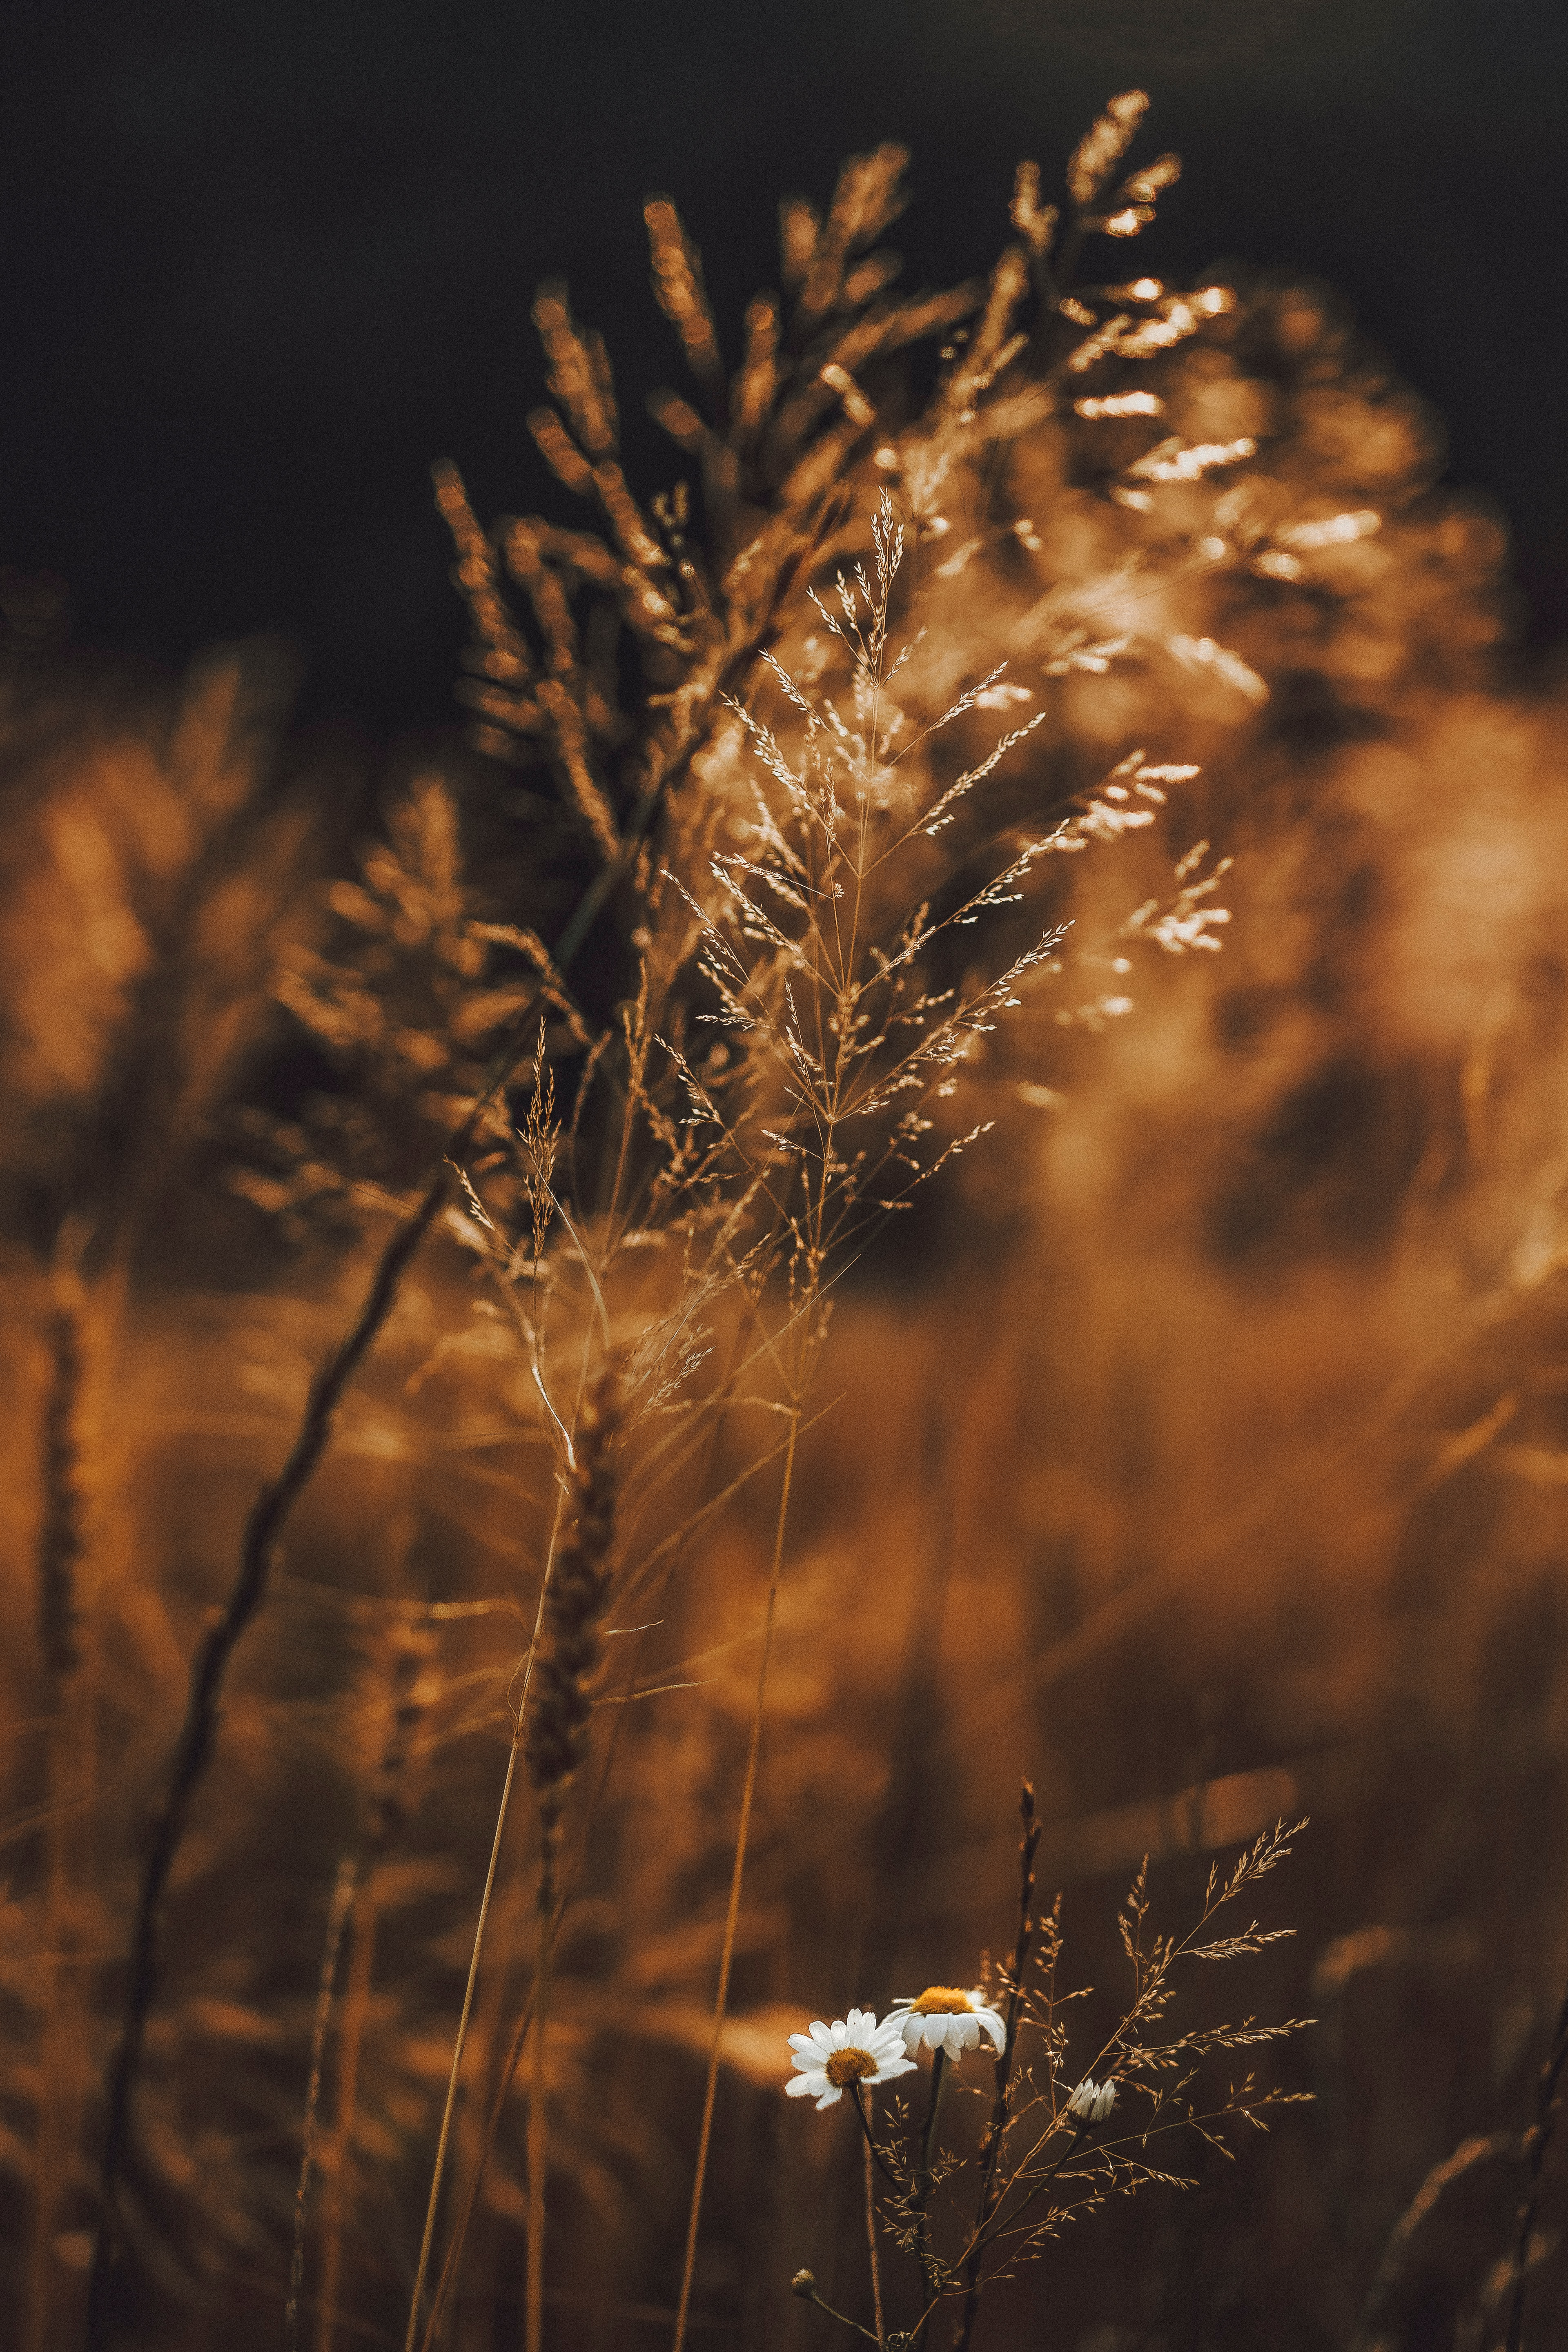 66866 download wallpaper Plants, Flowers, Grass, Cones, Macro, Field, Spikelets screensavers and pictures for free